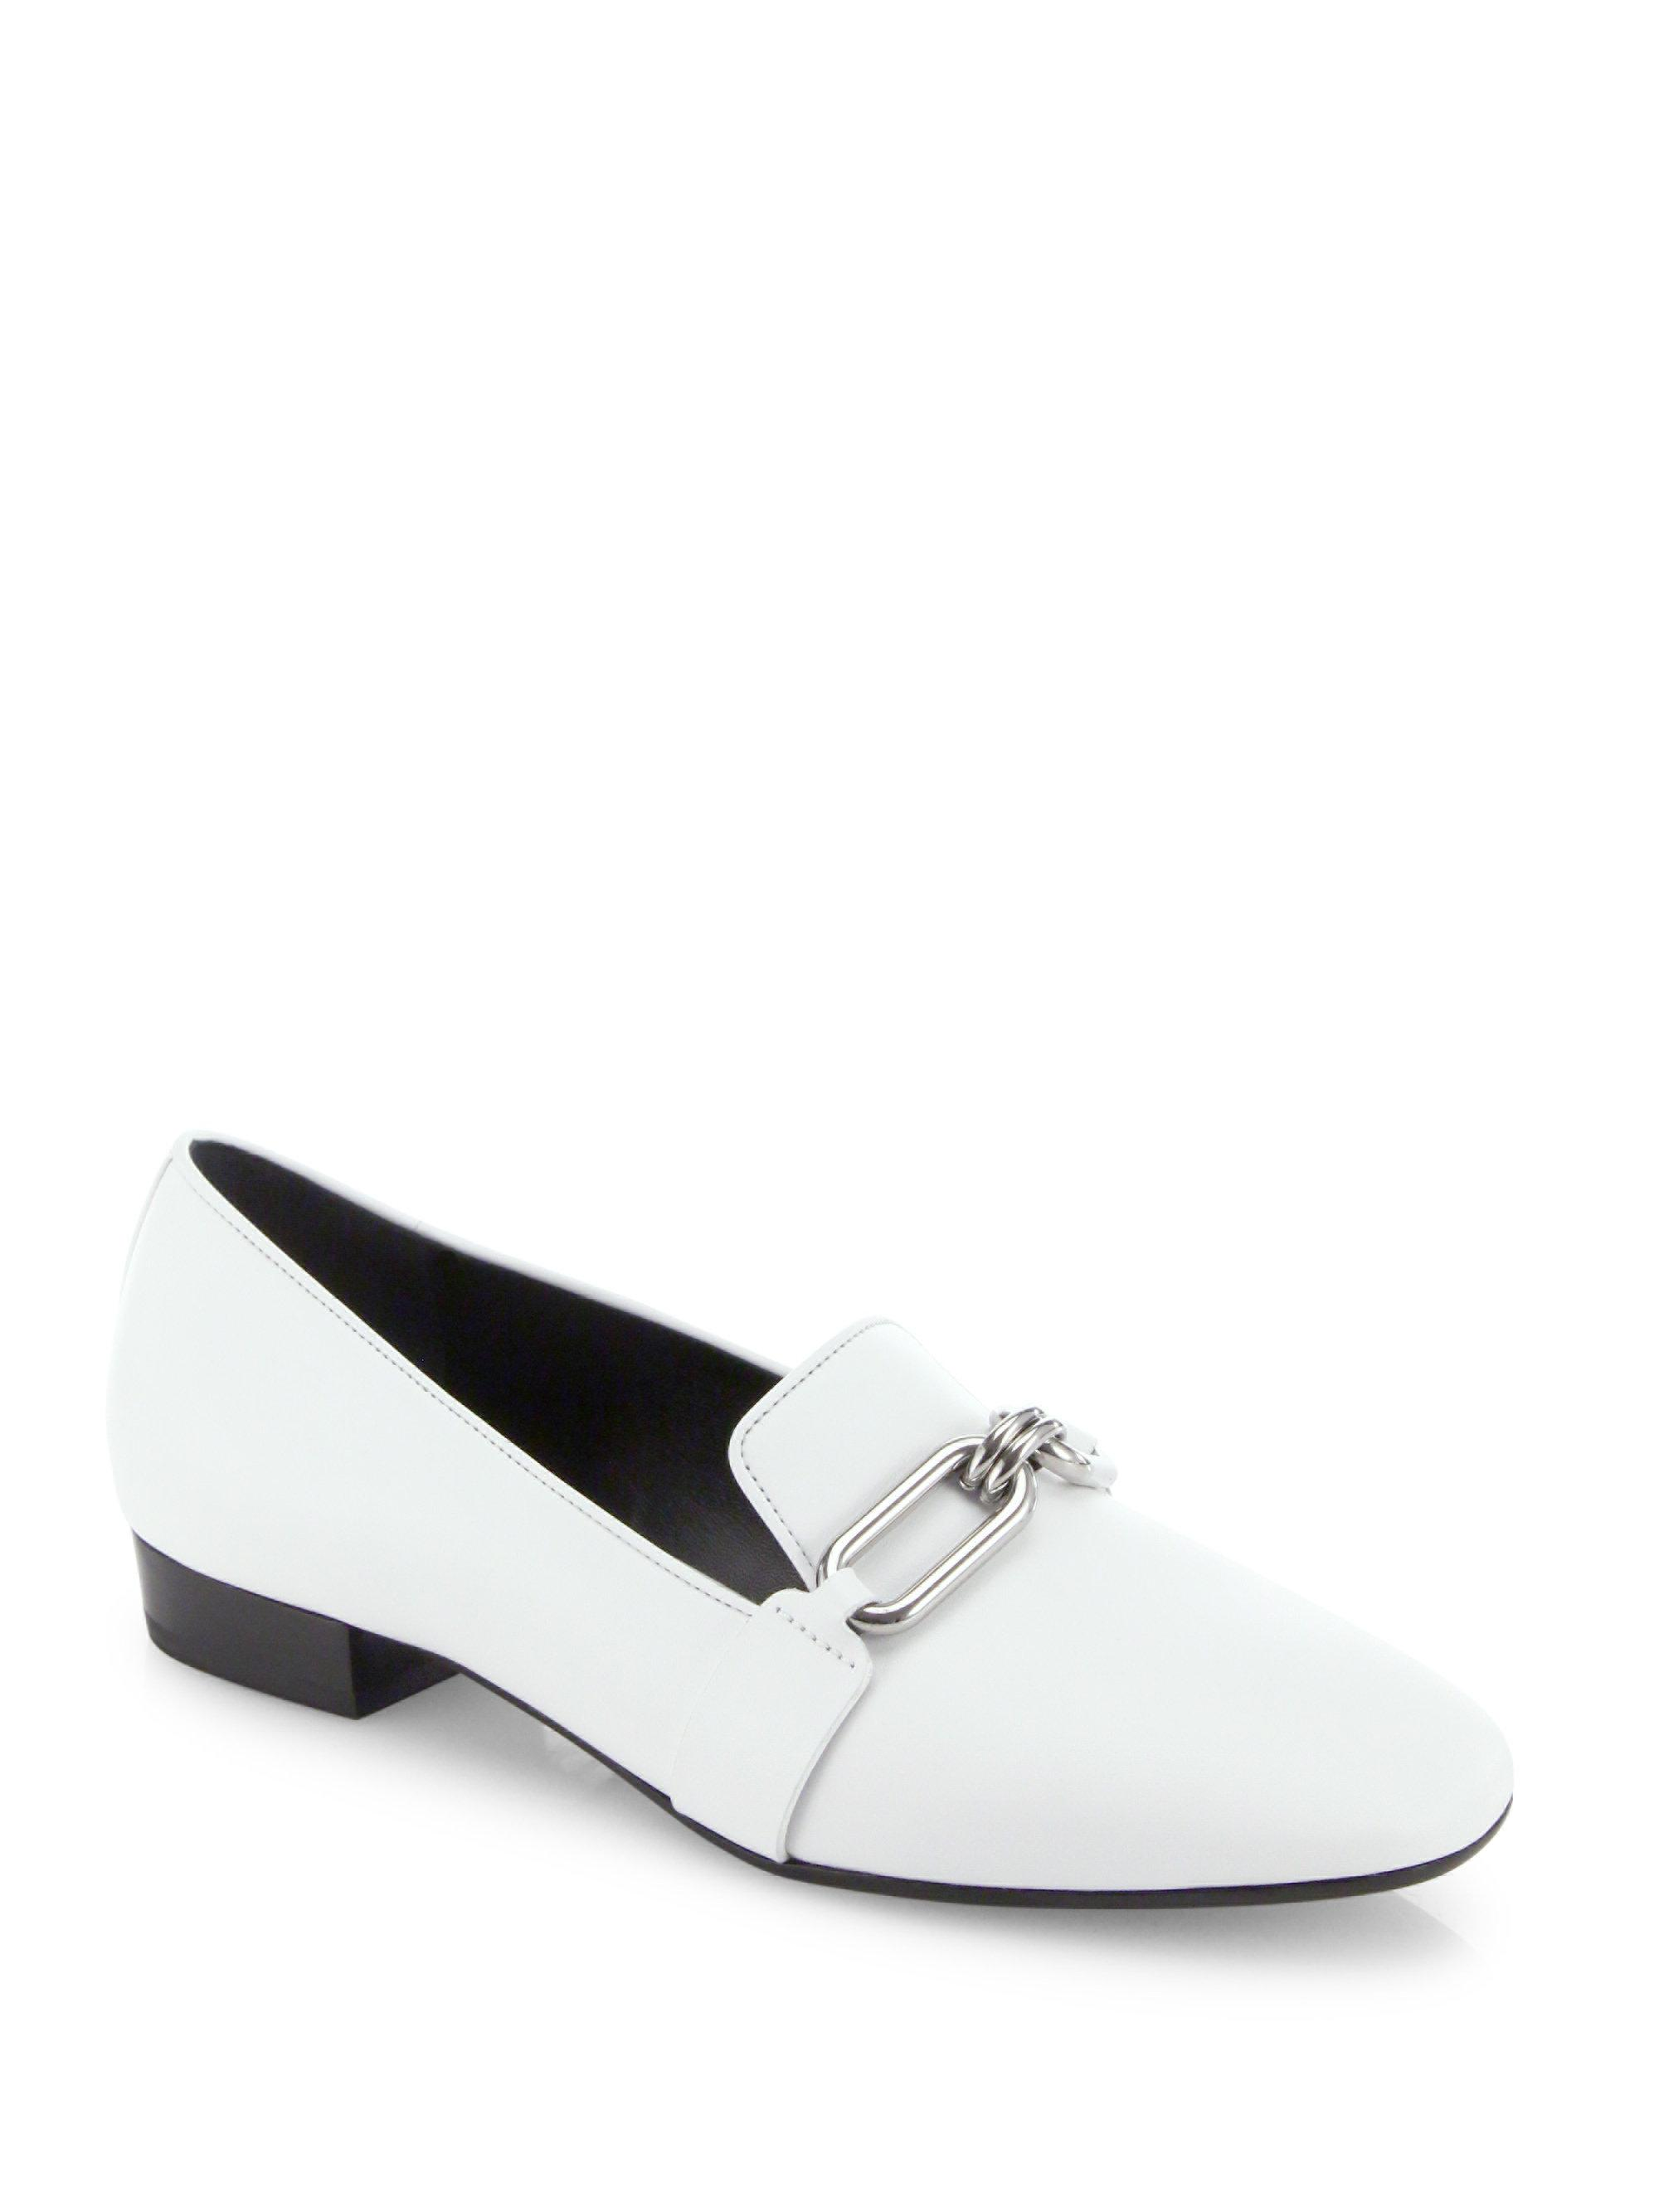 9df226b039d Lyst - Michael Kors Lennox Leather Loafers in White